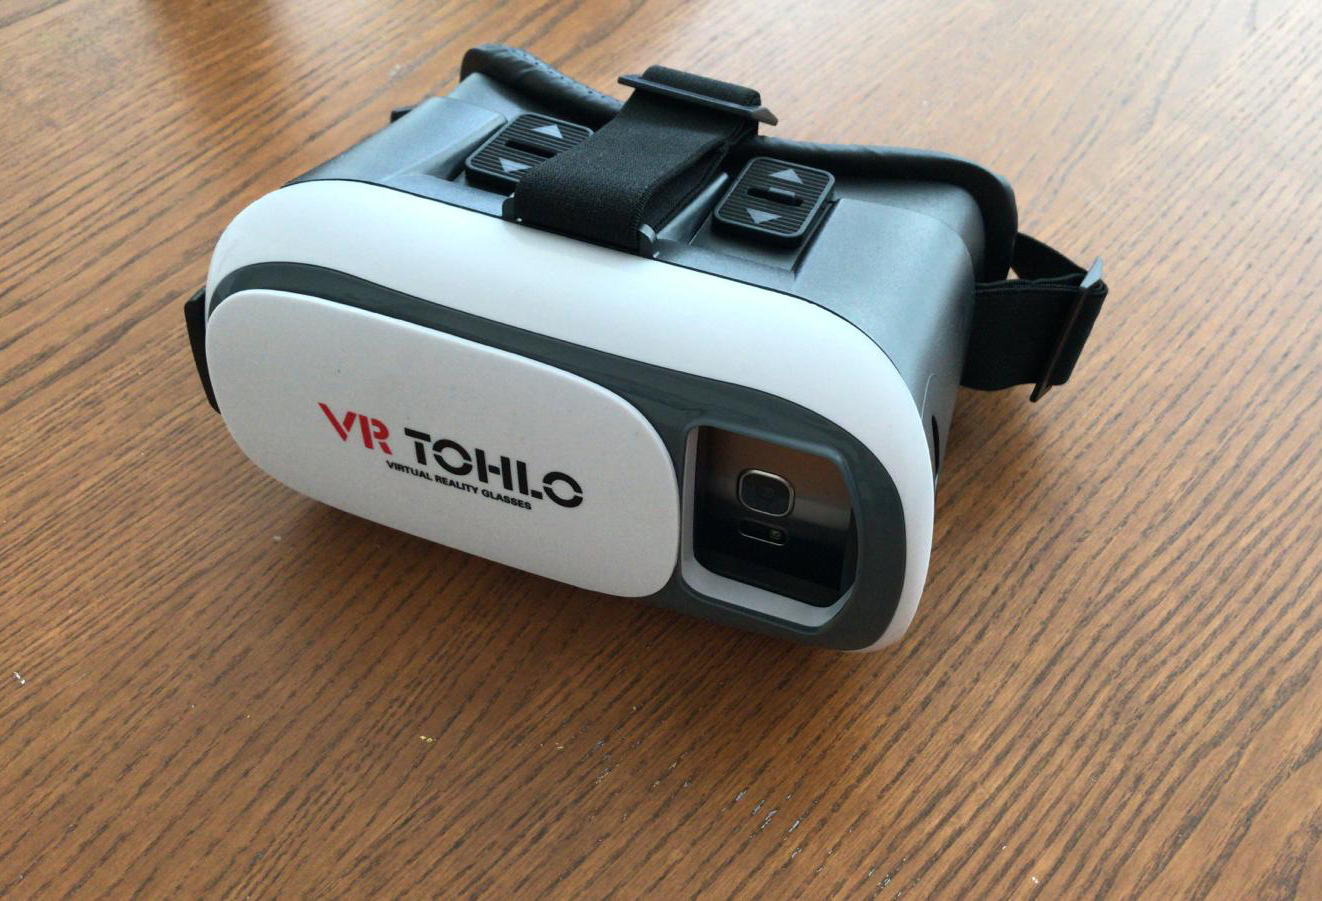 Adapted VR goggles for a mobile phone used to film the Fatberg Candles. Removed lenses so the camera records directly at eye level and user has to try and record and orientate themselves from the un-focused screen immediately in-front of their eyes so reflect the lack of perspective and direction on the subject.